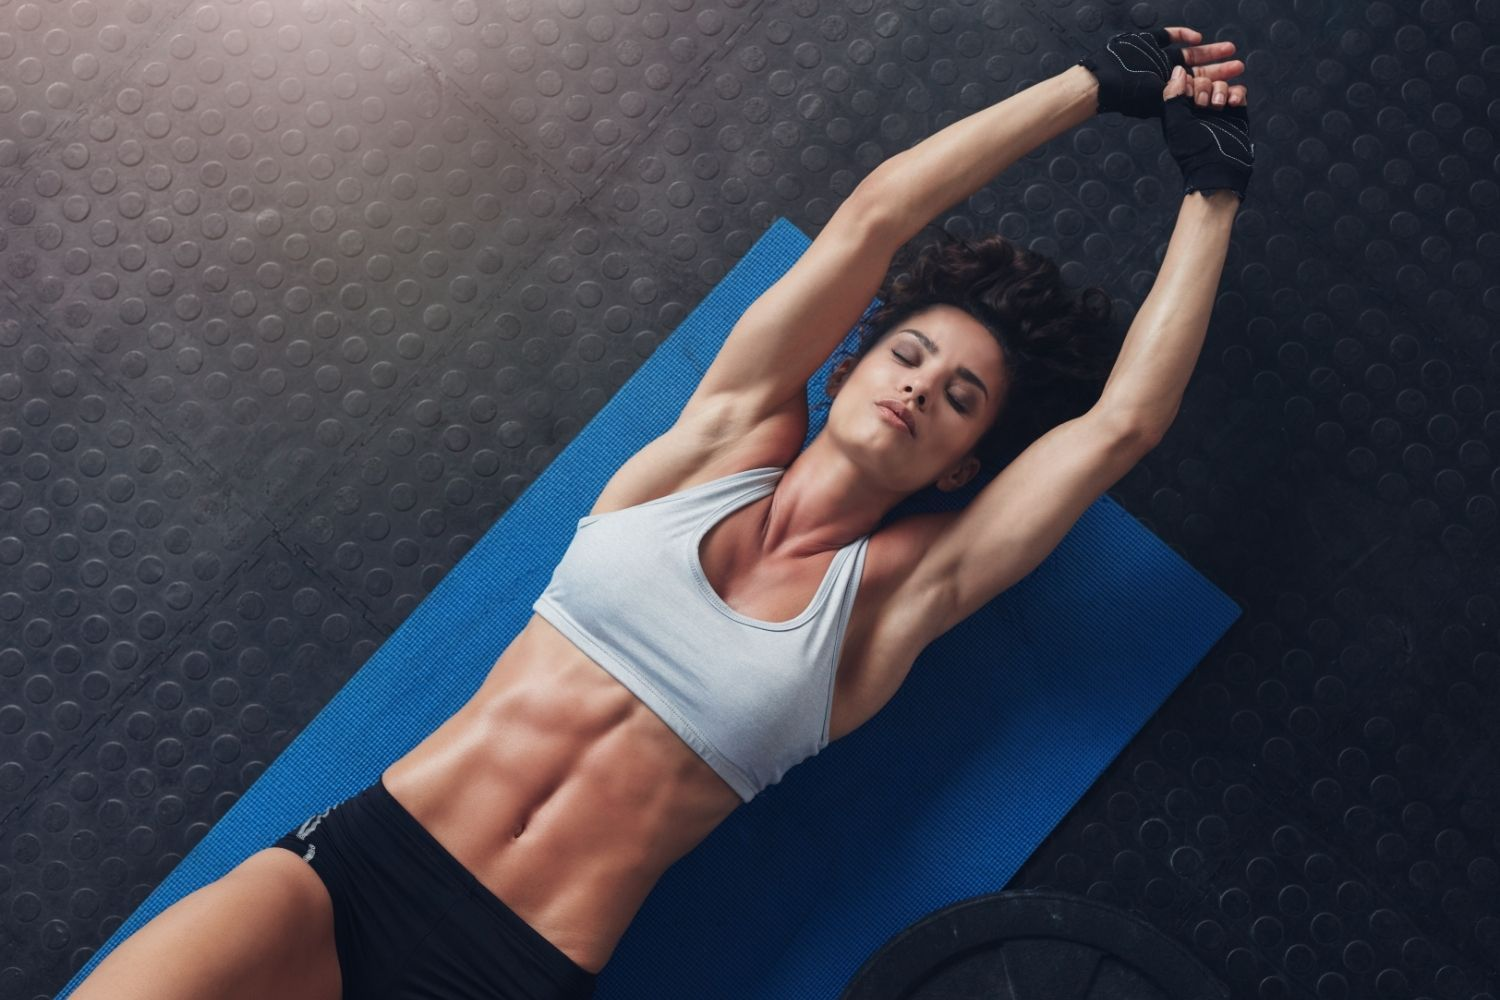 Science-Based Workout: Build Muscle, Lose Fat And Get Fit